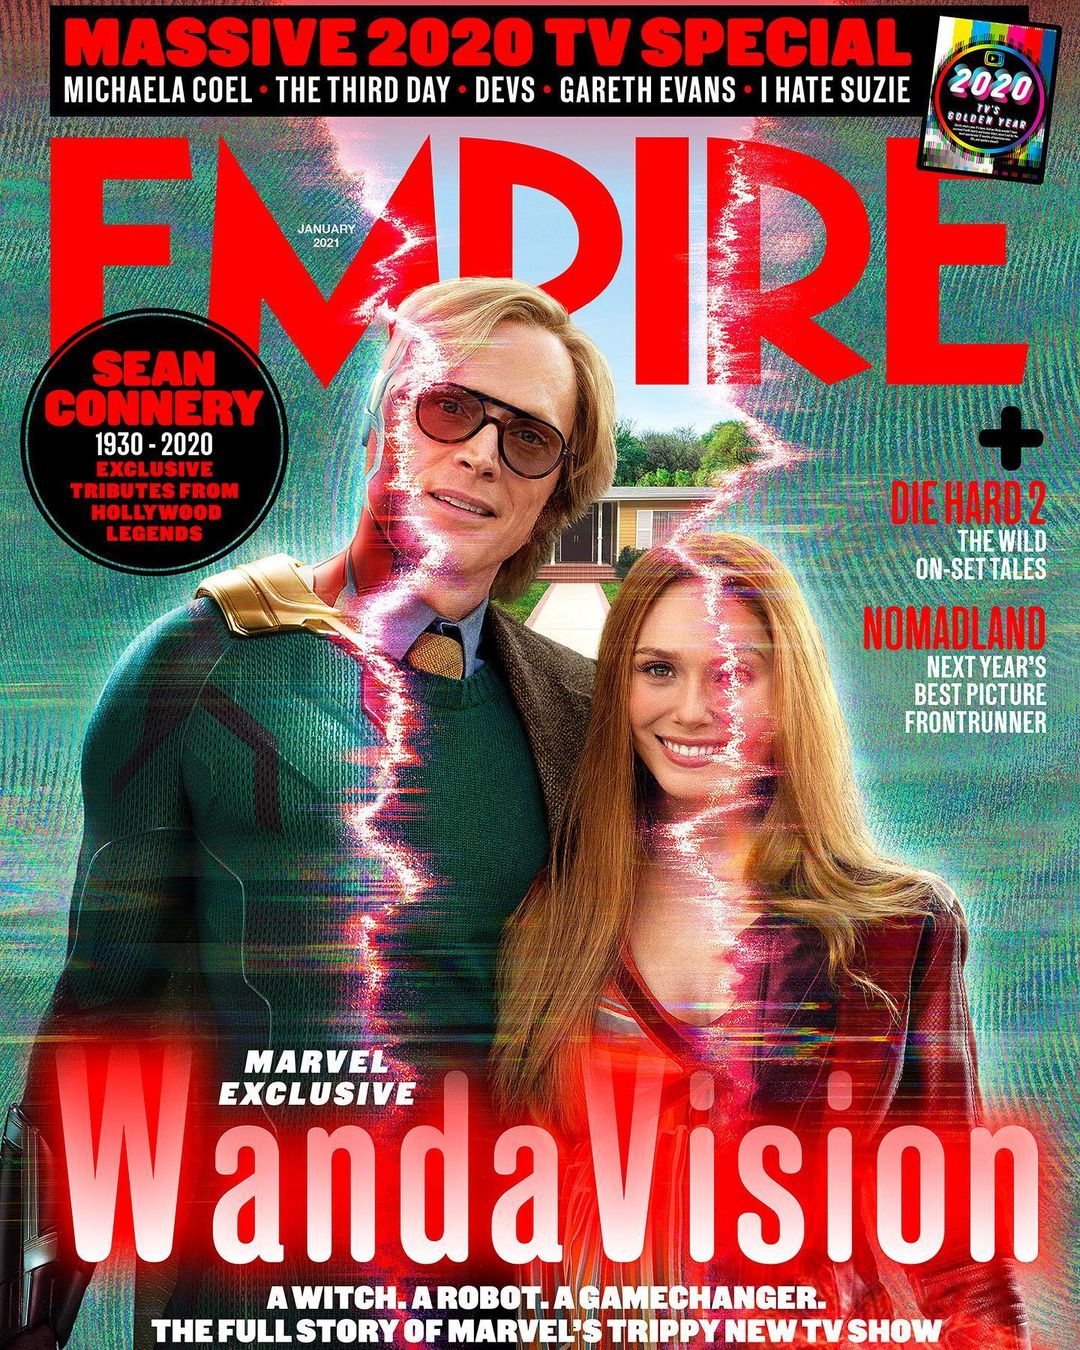 """Empire Magazine's Instagram post: """"A bold new era. Welcoming in the future of the MCU, Empire's WandaVision cover gets to know Marvel's strangest couple. Get the full story –…"""""""